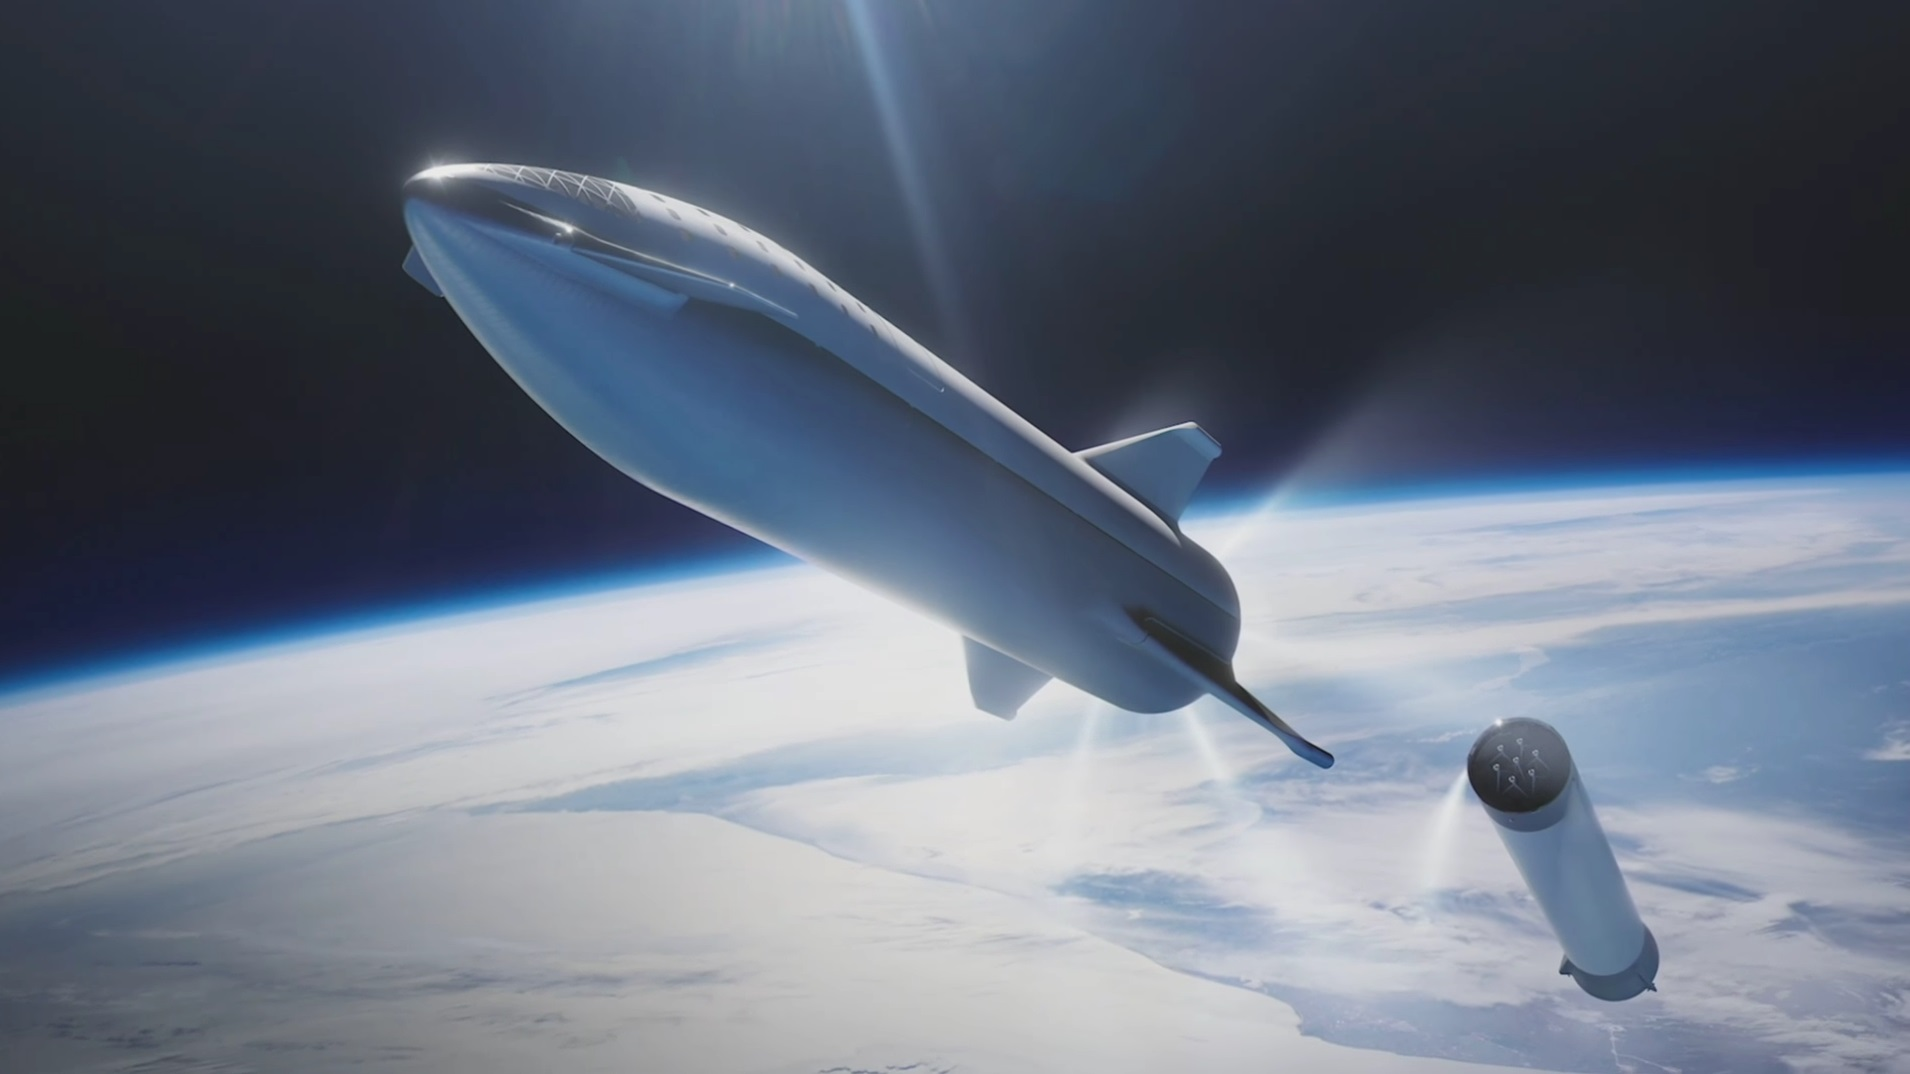 18 new details about Elon Musk's redesigned, moon-bound 'Big F*ing Rocket' spacex6